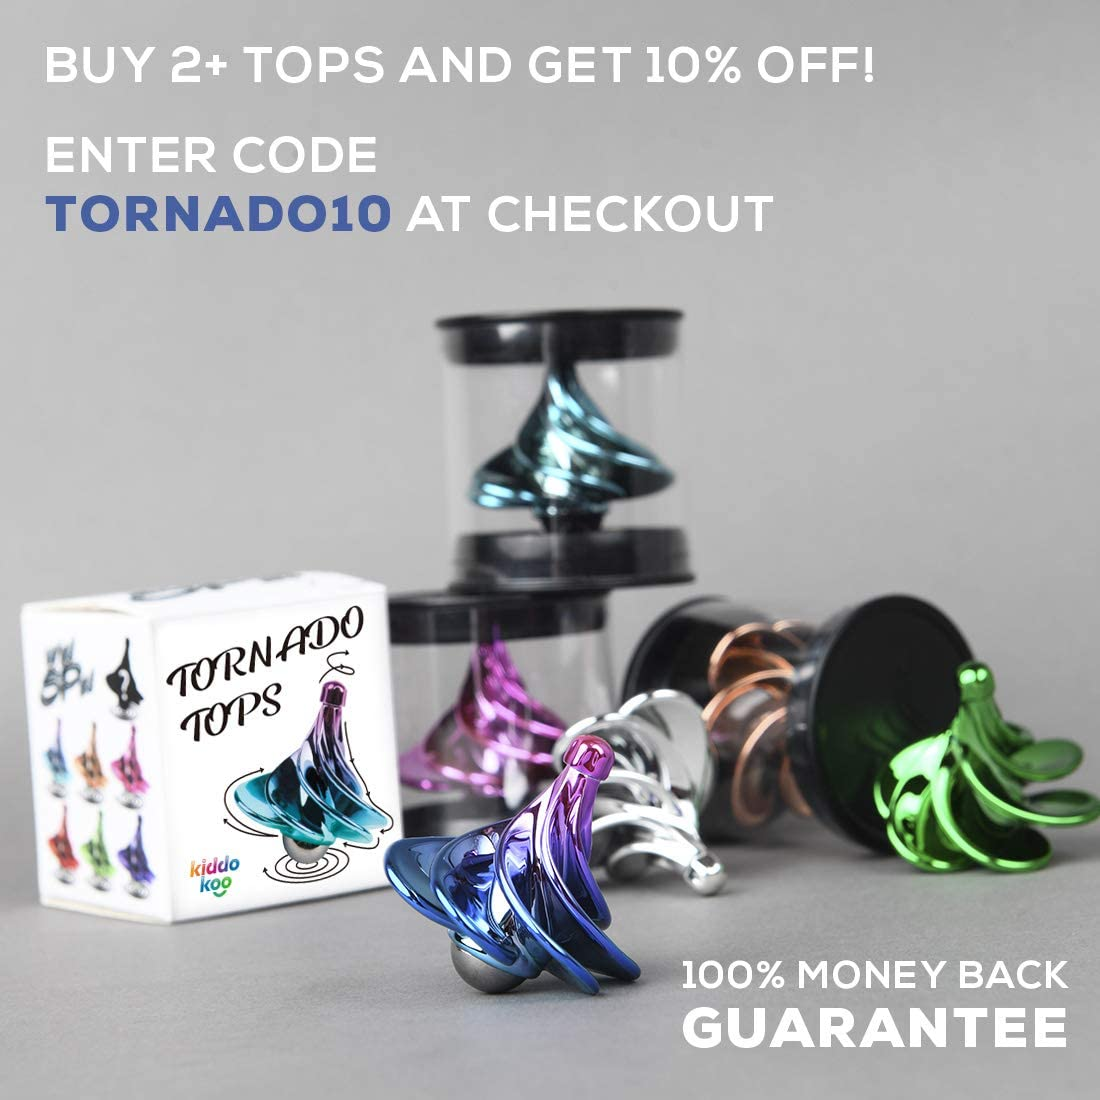 Spinning Top Great Party Favors or Office Decor A New take on Spin Top Toy and Adult Fidget Decompression Spinner Toys The Original Tornado Tops Wind Gyro Based Spinning Tops for Kids and Adults